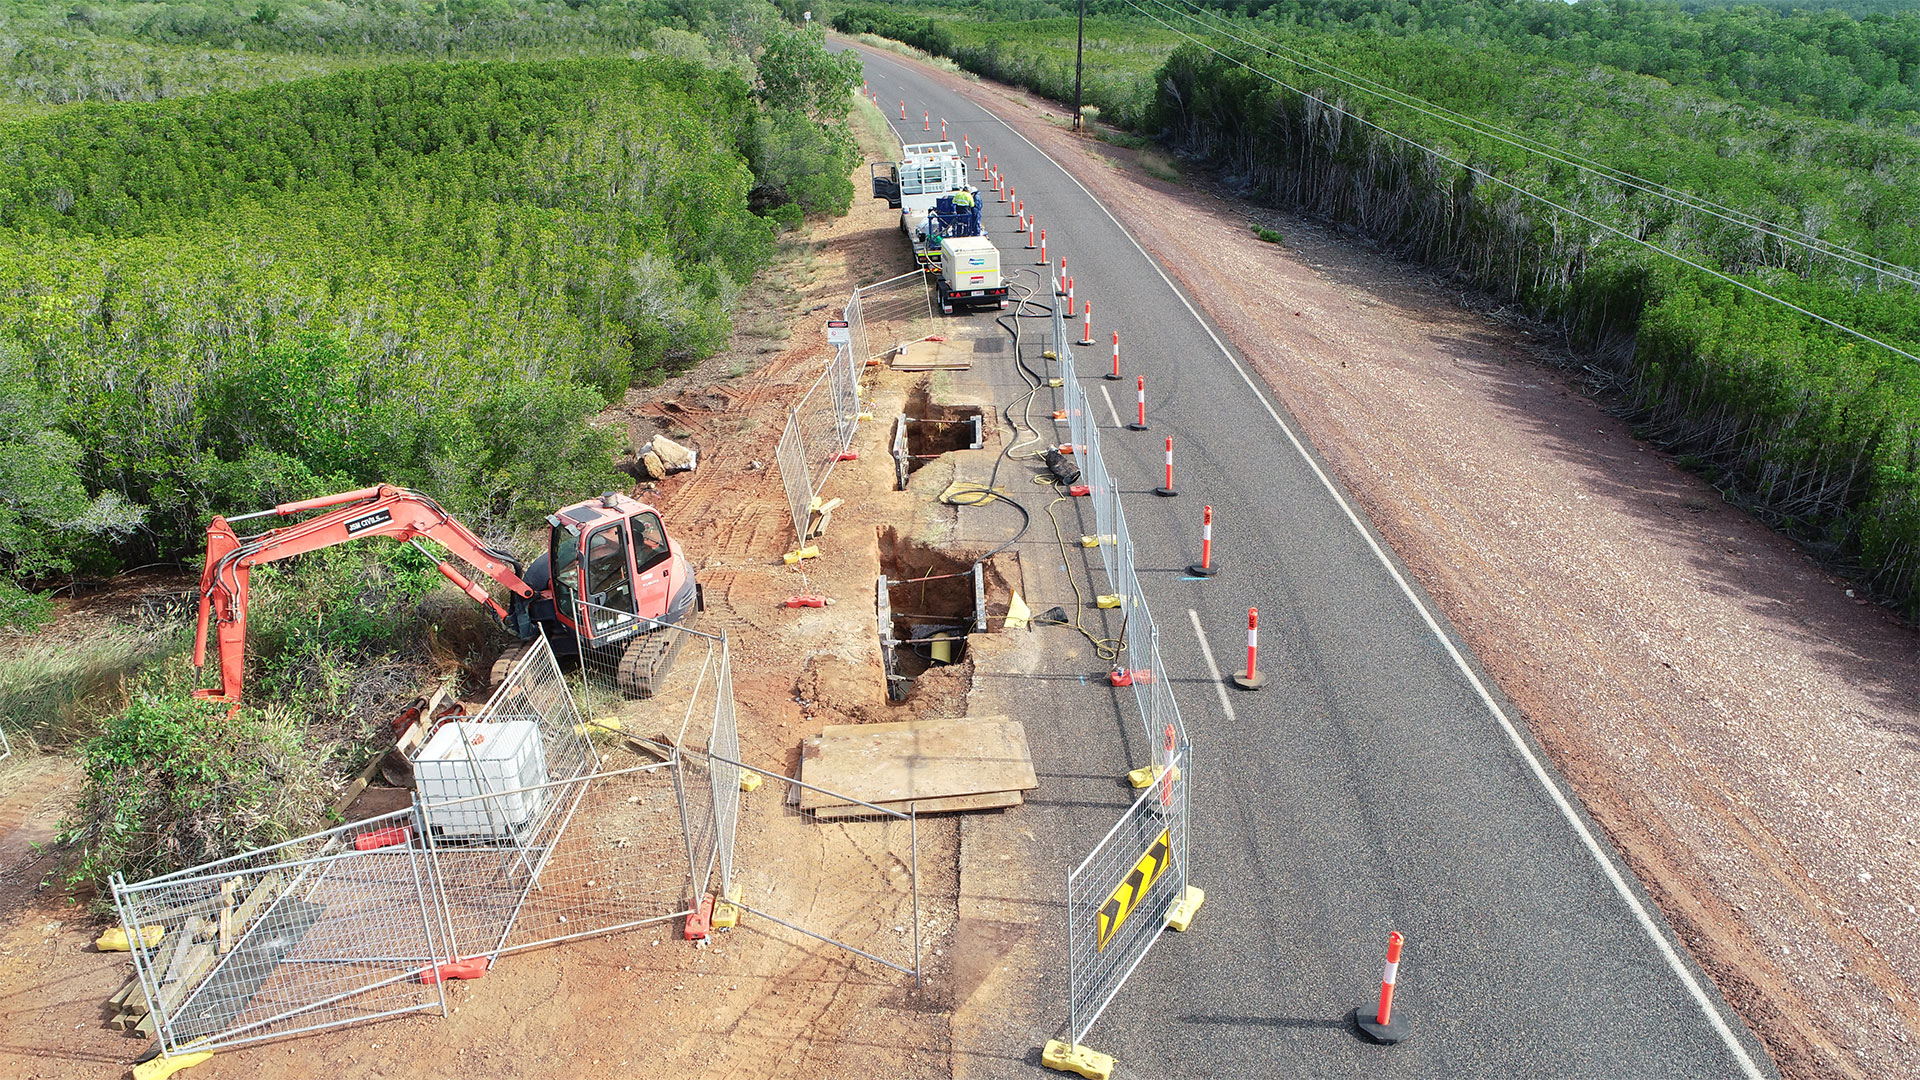 Workers drilling on the side of a road